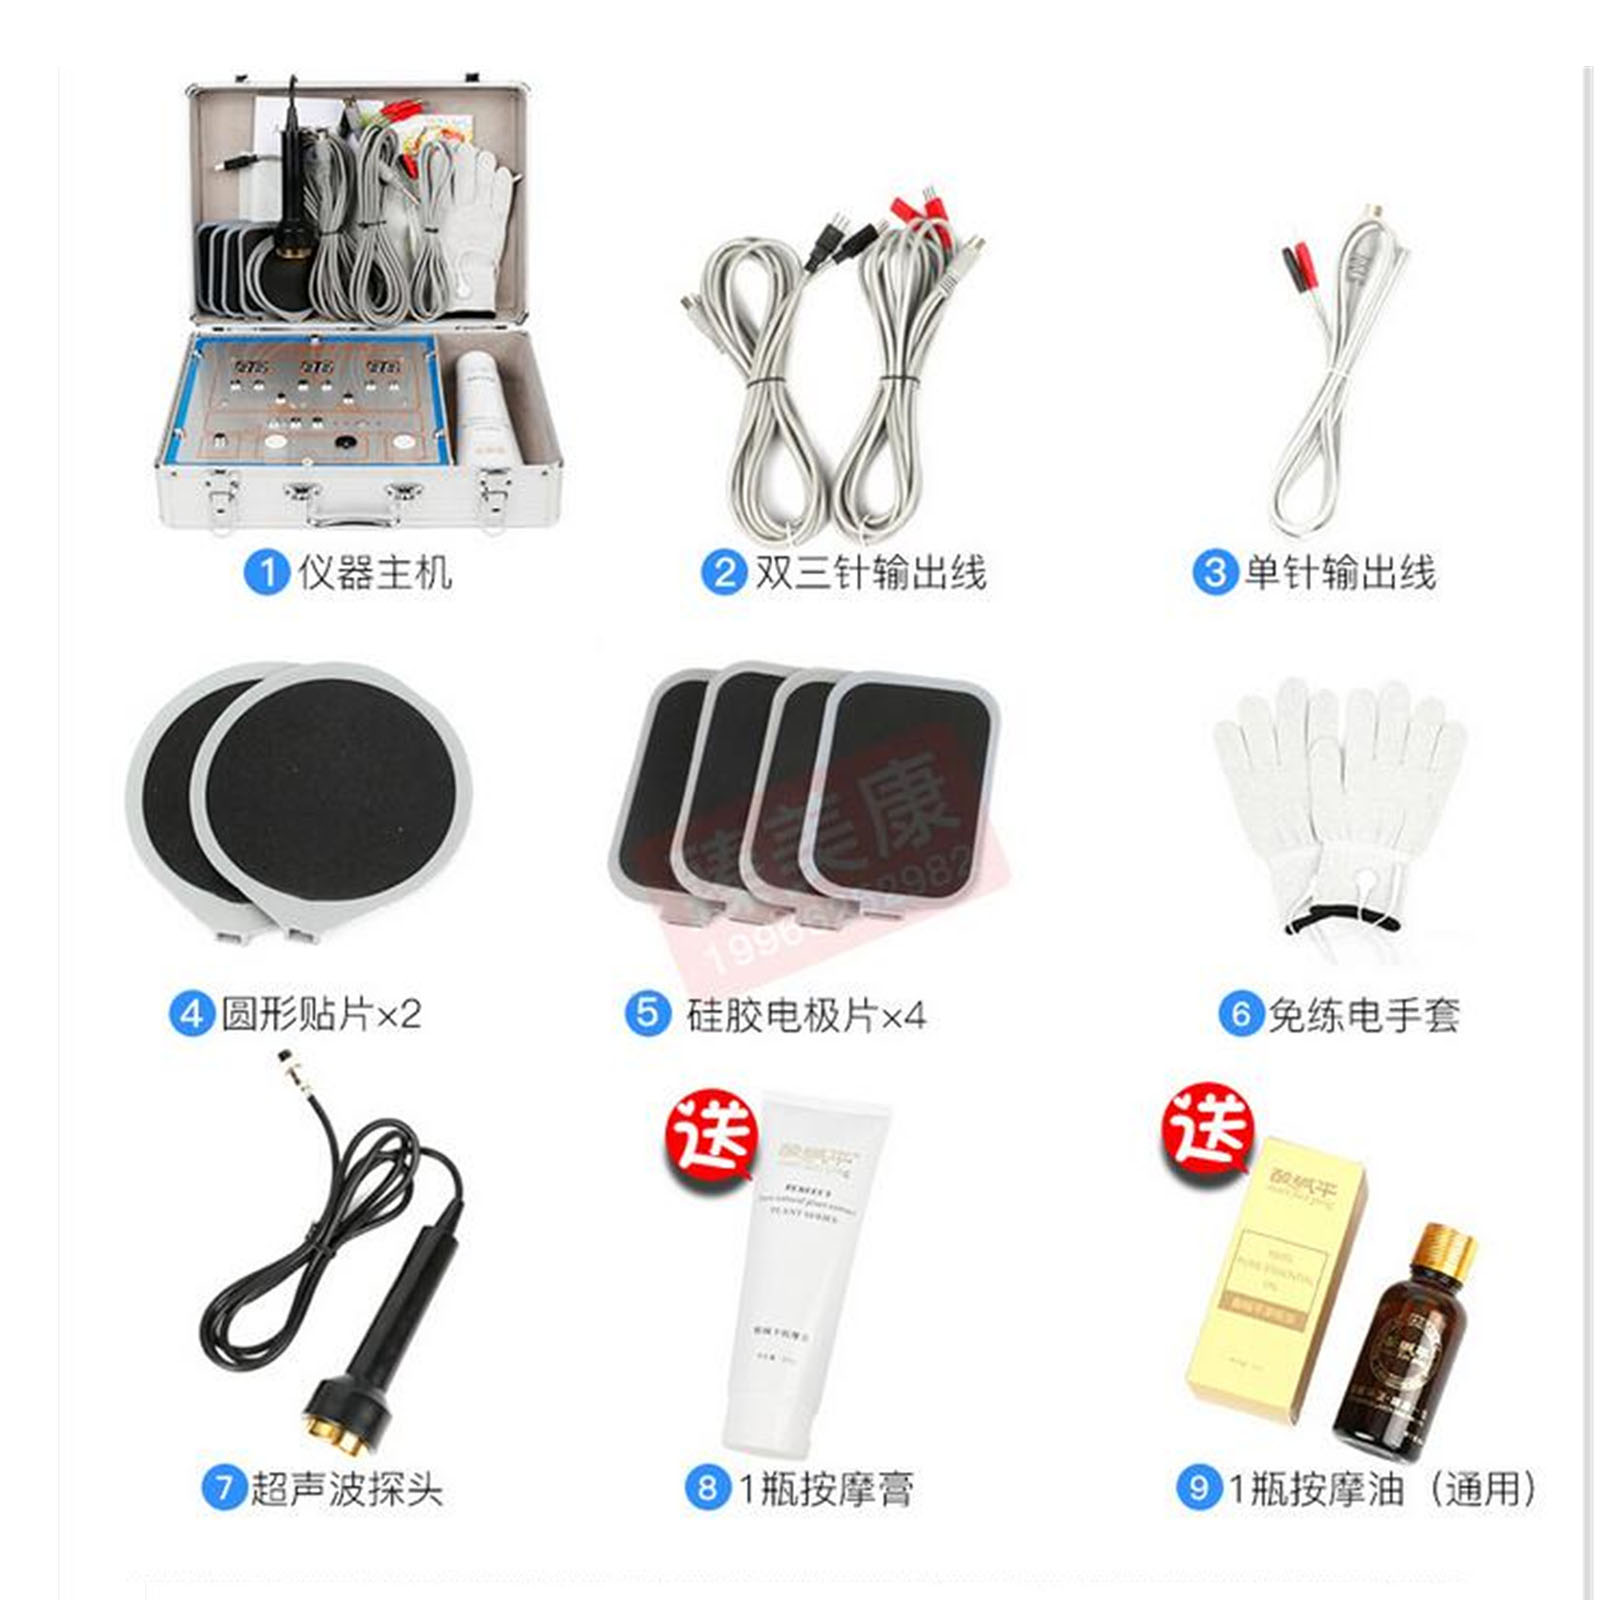 JYTOP DDS massager multi-function body bioelectric meridian dredge pulse physiotherapy instrument DDS electrotherapy device